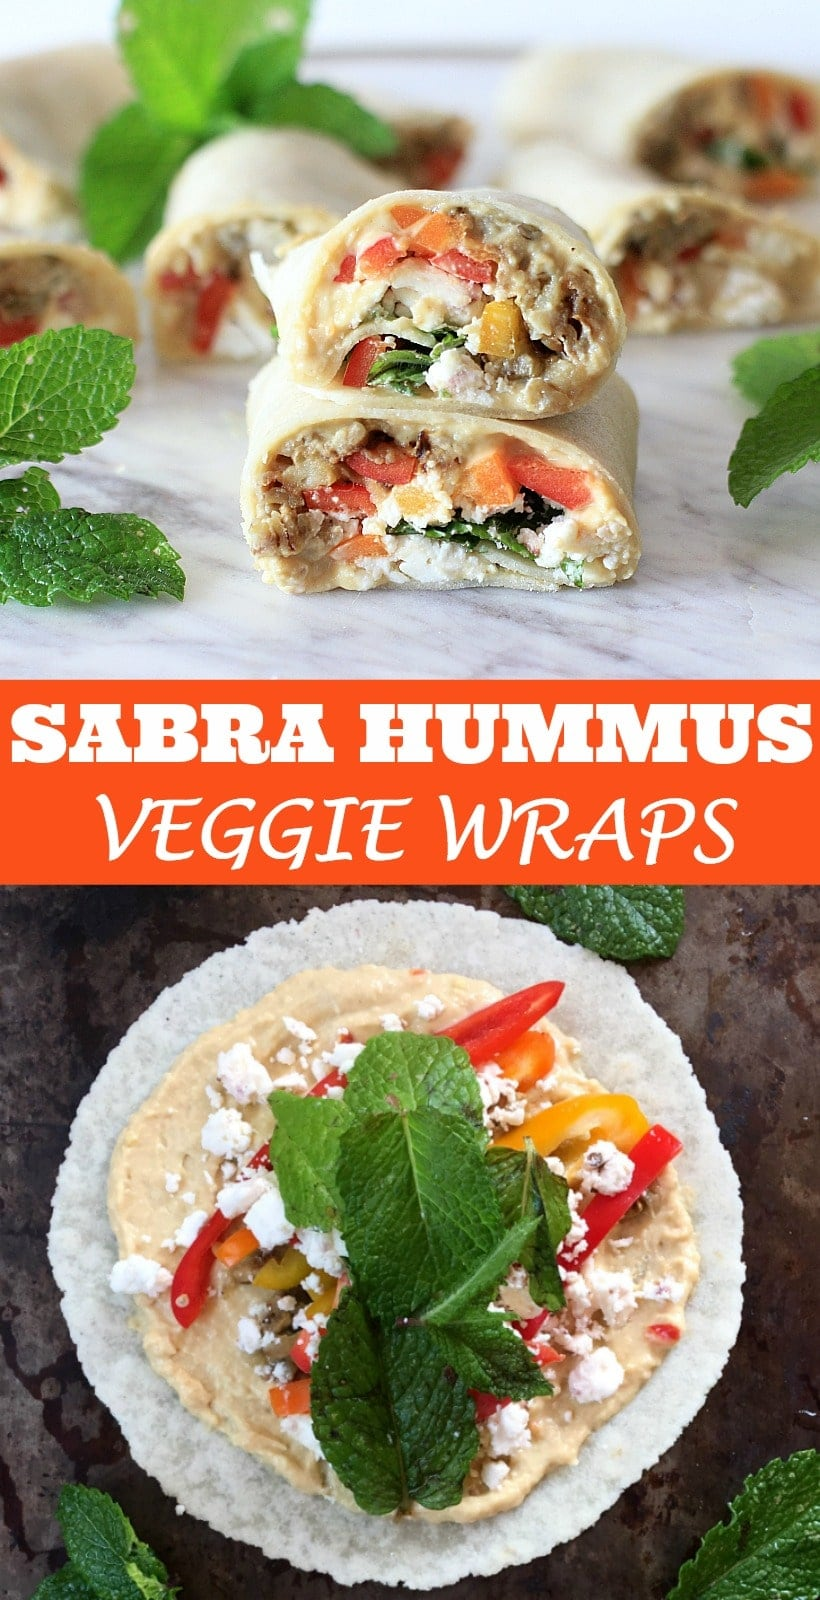 These Sabra Hummus Veggie Wraps are powered with plant based protein + peppers, roasted eggplant, fresh mint, & feta cheese~perfect for a healthy, yet filling lunch, snack, or appetizer! Get the gluten-free recipe at EA Stewart, The Spicy RD #sponsored